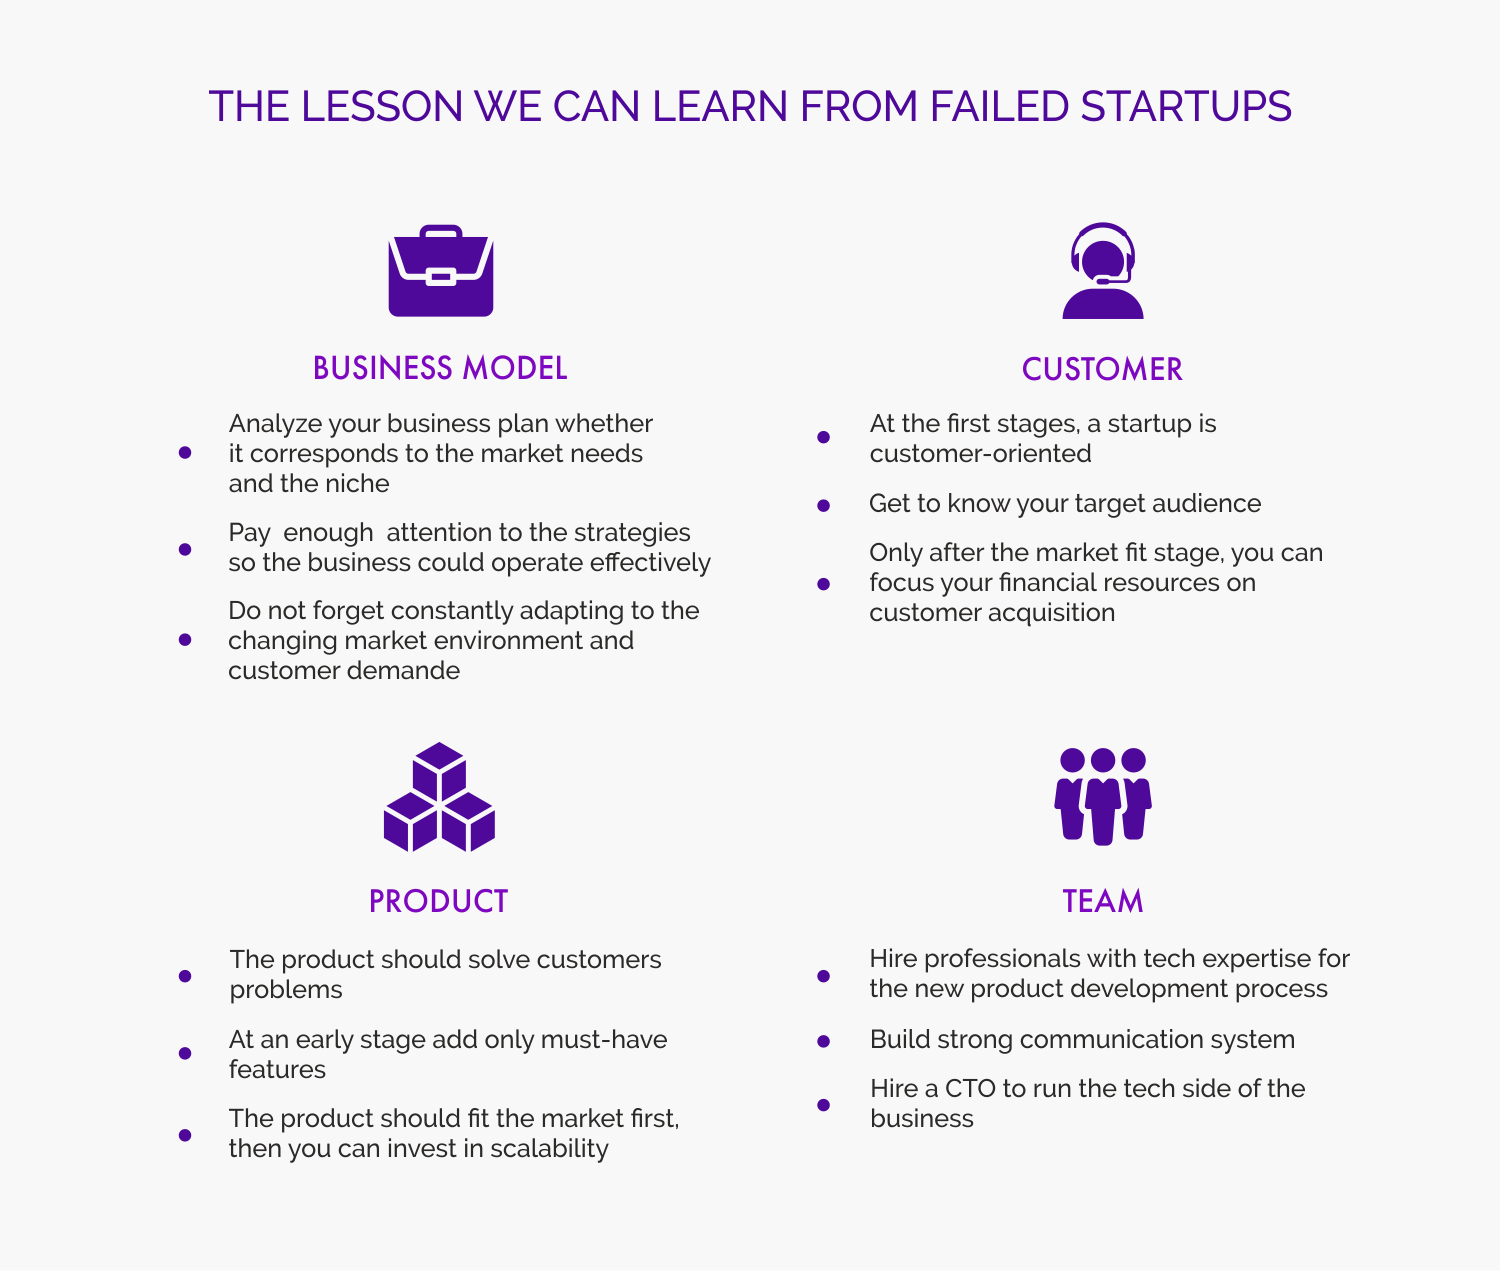 failed_startups_5